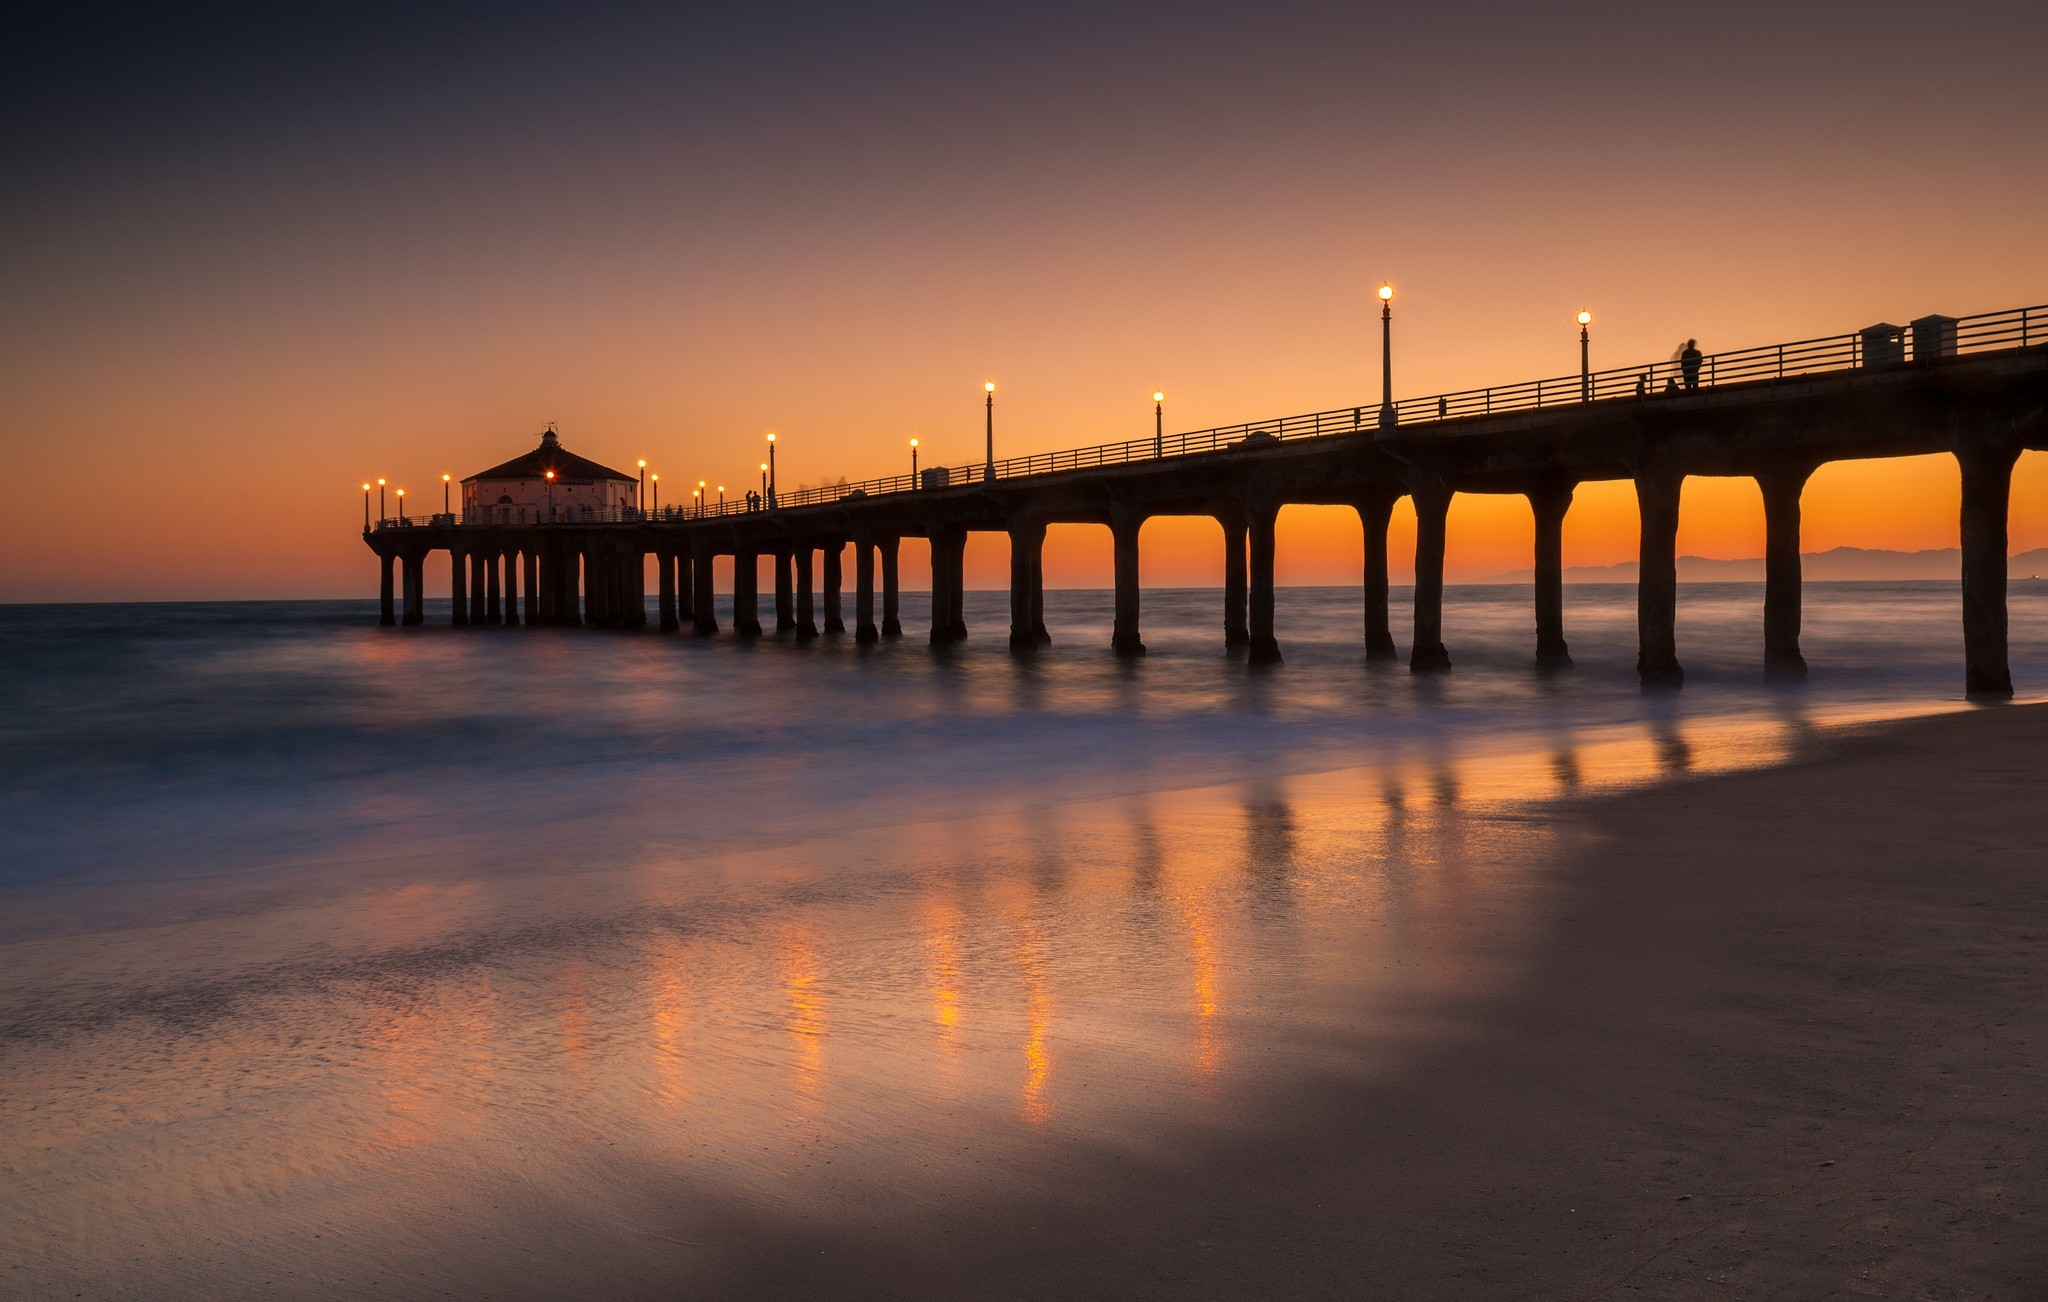 Manhattan Beach Wallpaper: Sunset Ocean Landscapes Beach Bridges Manhattan Sea